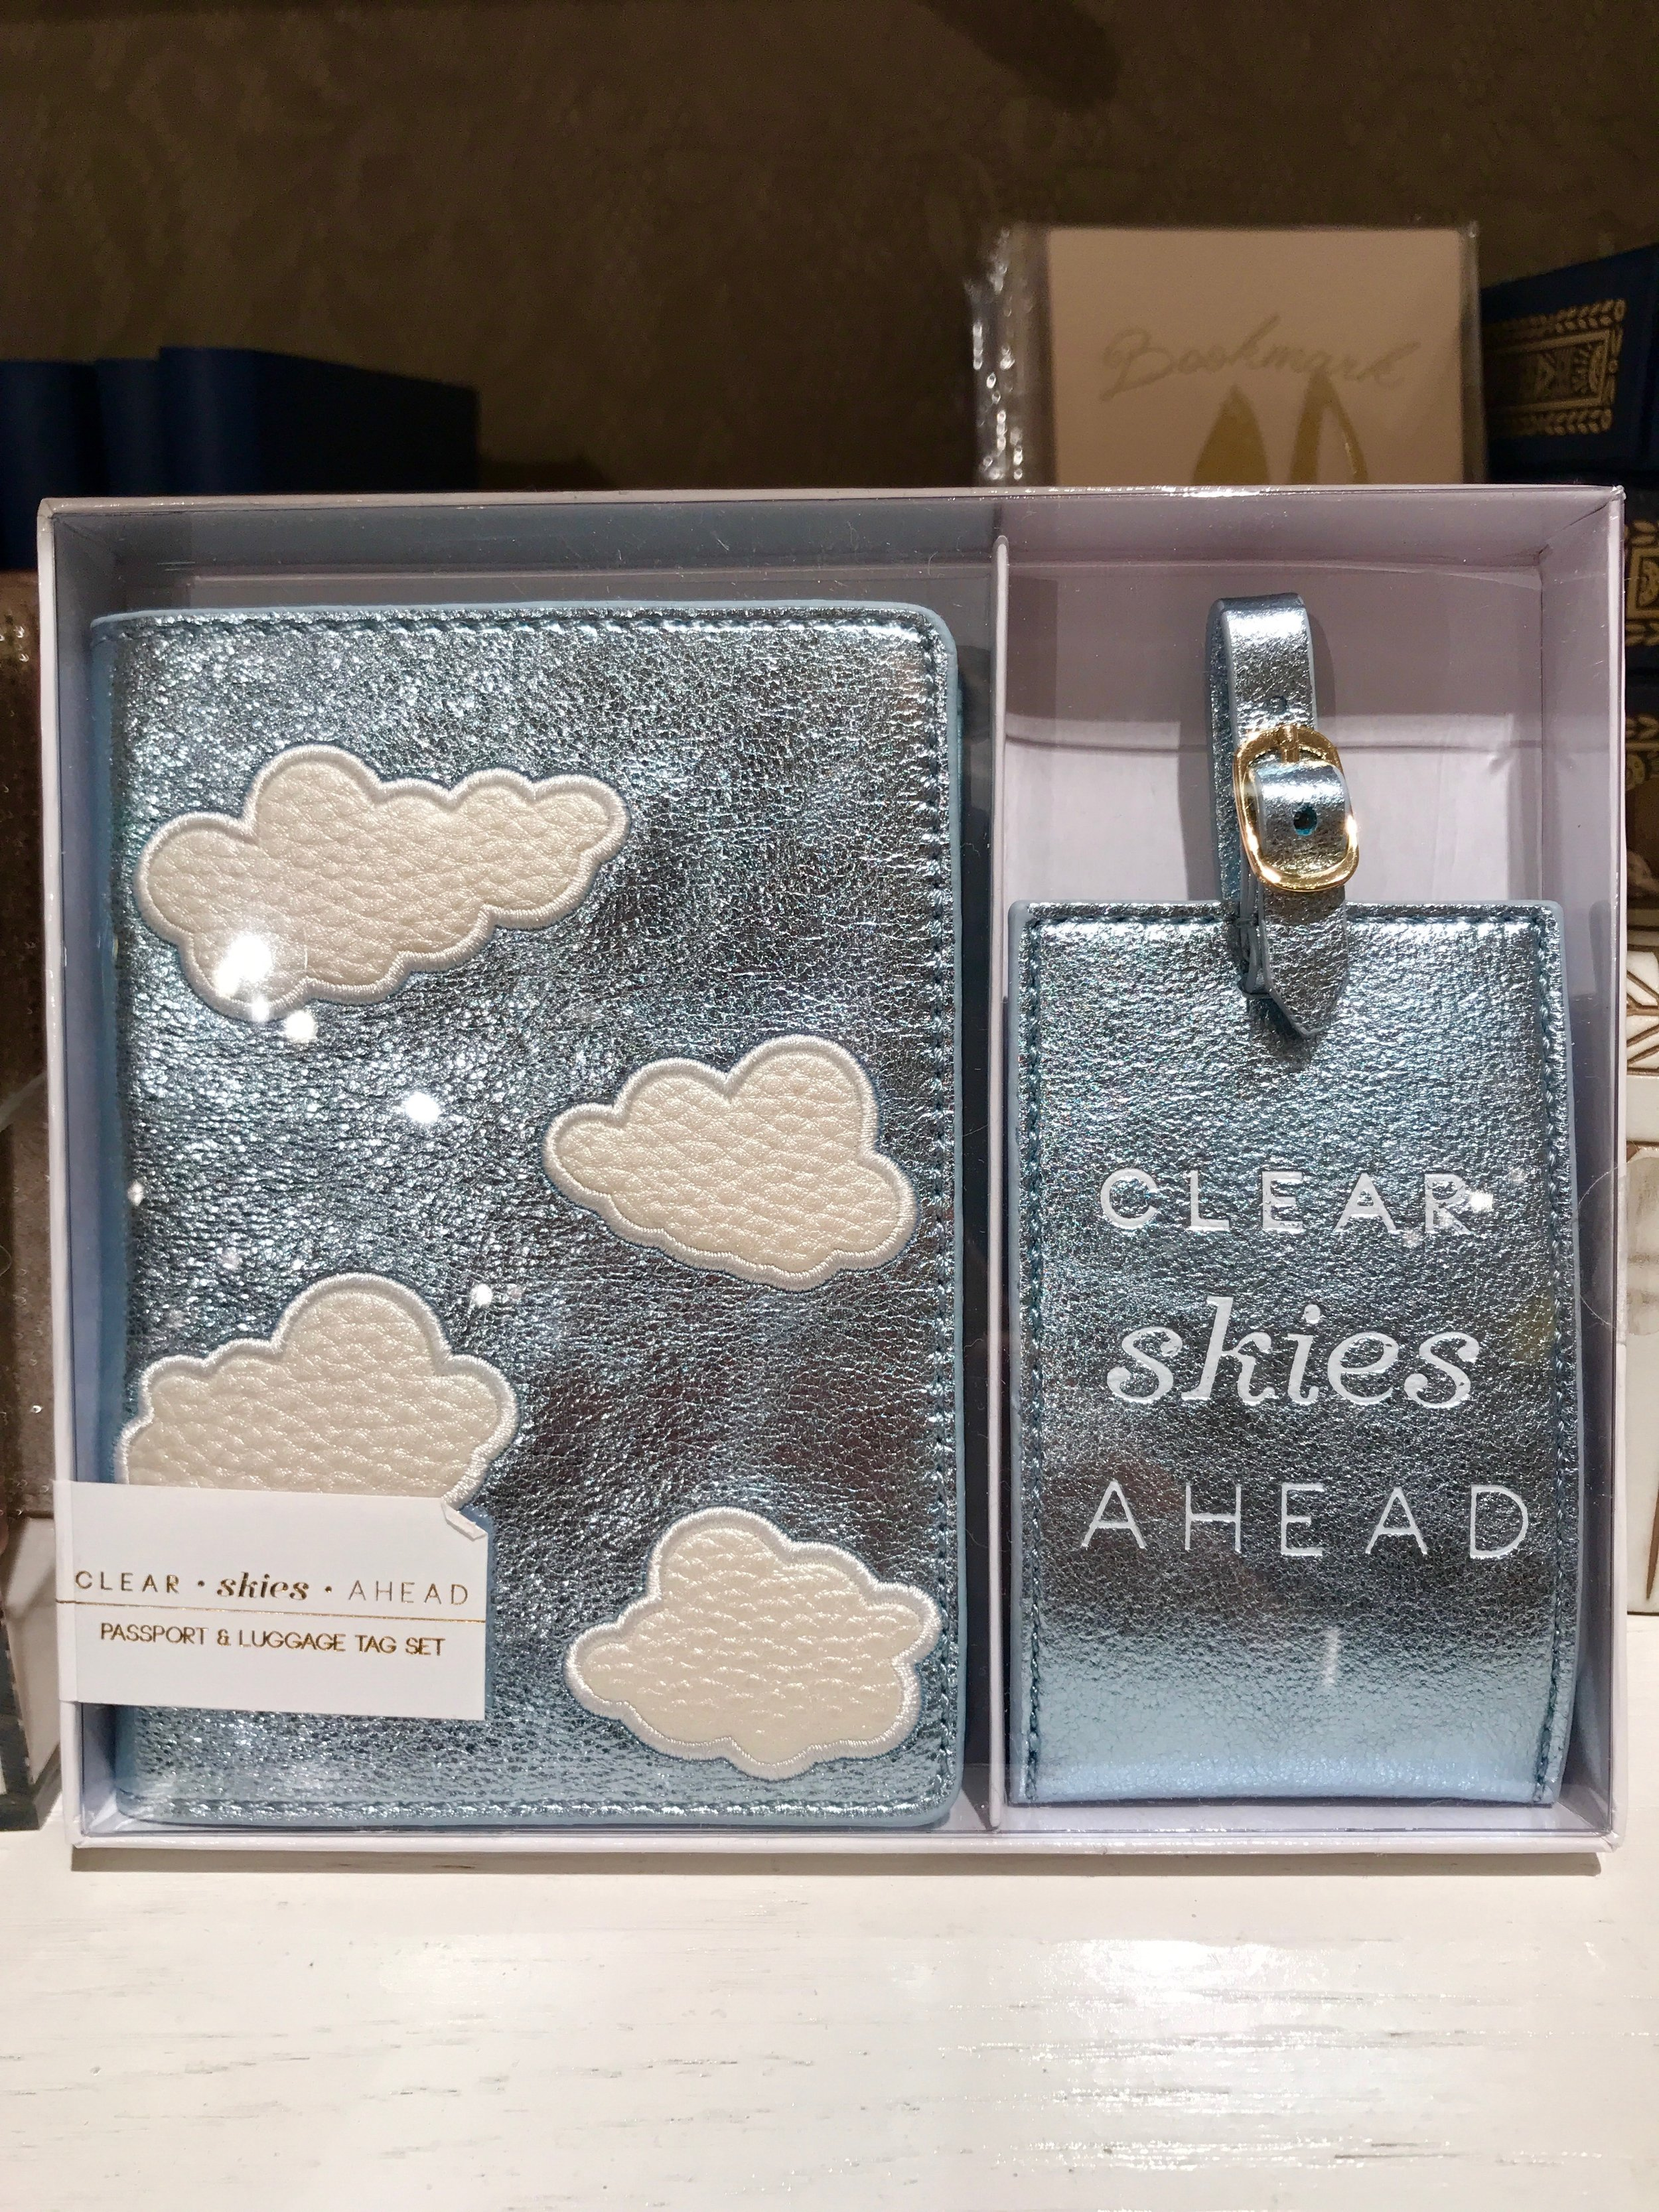 Passport Holder + Bag Tag - $40 - Store: AnthropologyIf you wanted to get a little bit more this set is super adorable. With a matching passport holder and bag tag in metallic blue is another great gift for any traveler! This would also be a great gift all by itself.